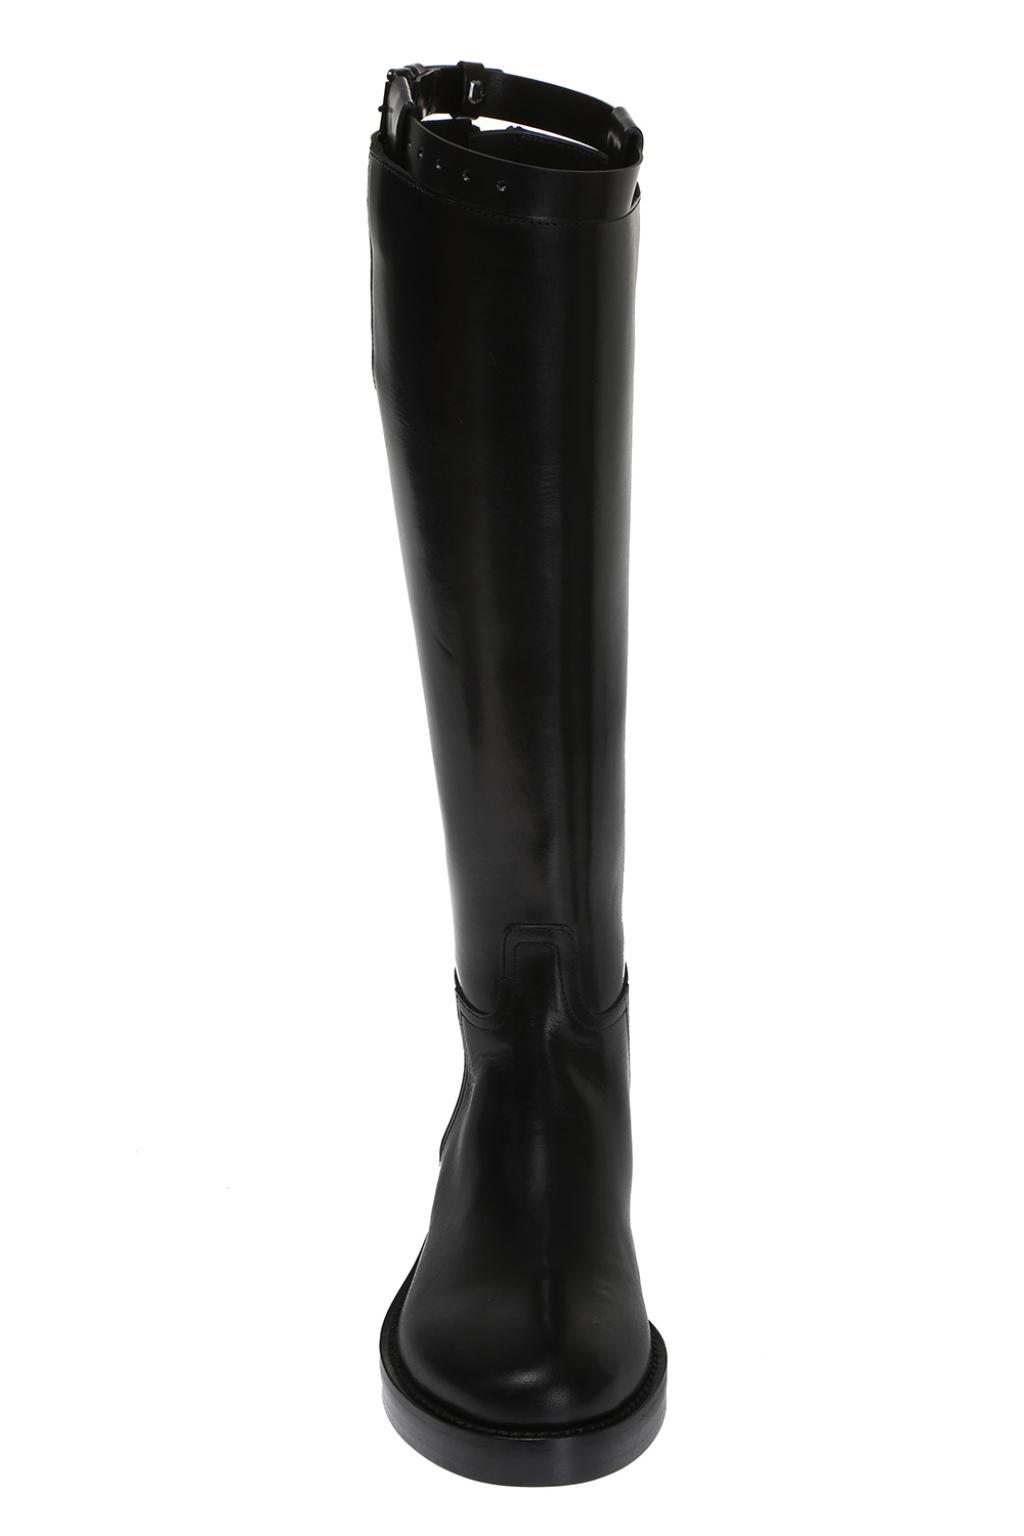 Ann Demeulemeester Leather Calf-length Boots in Black